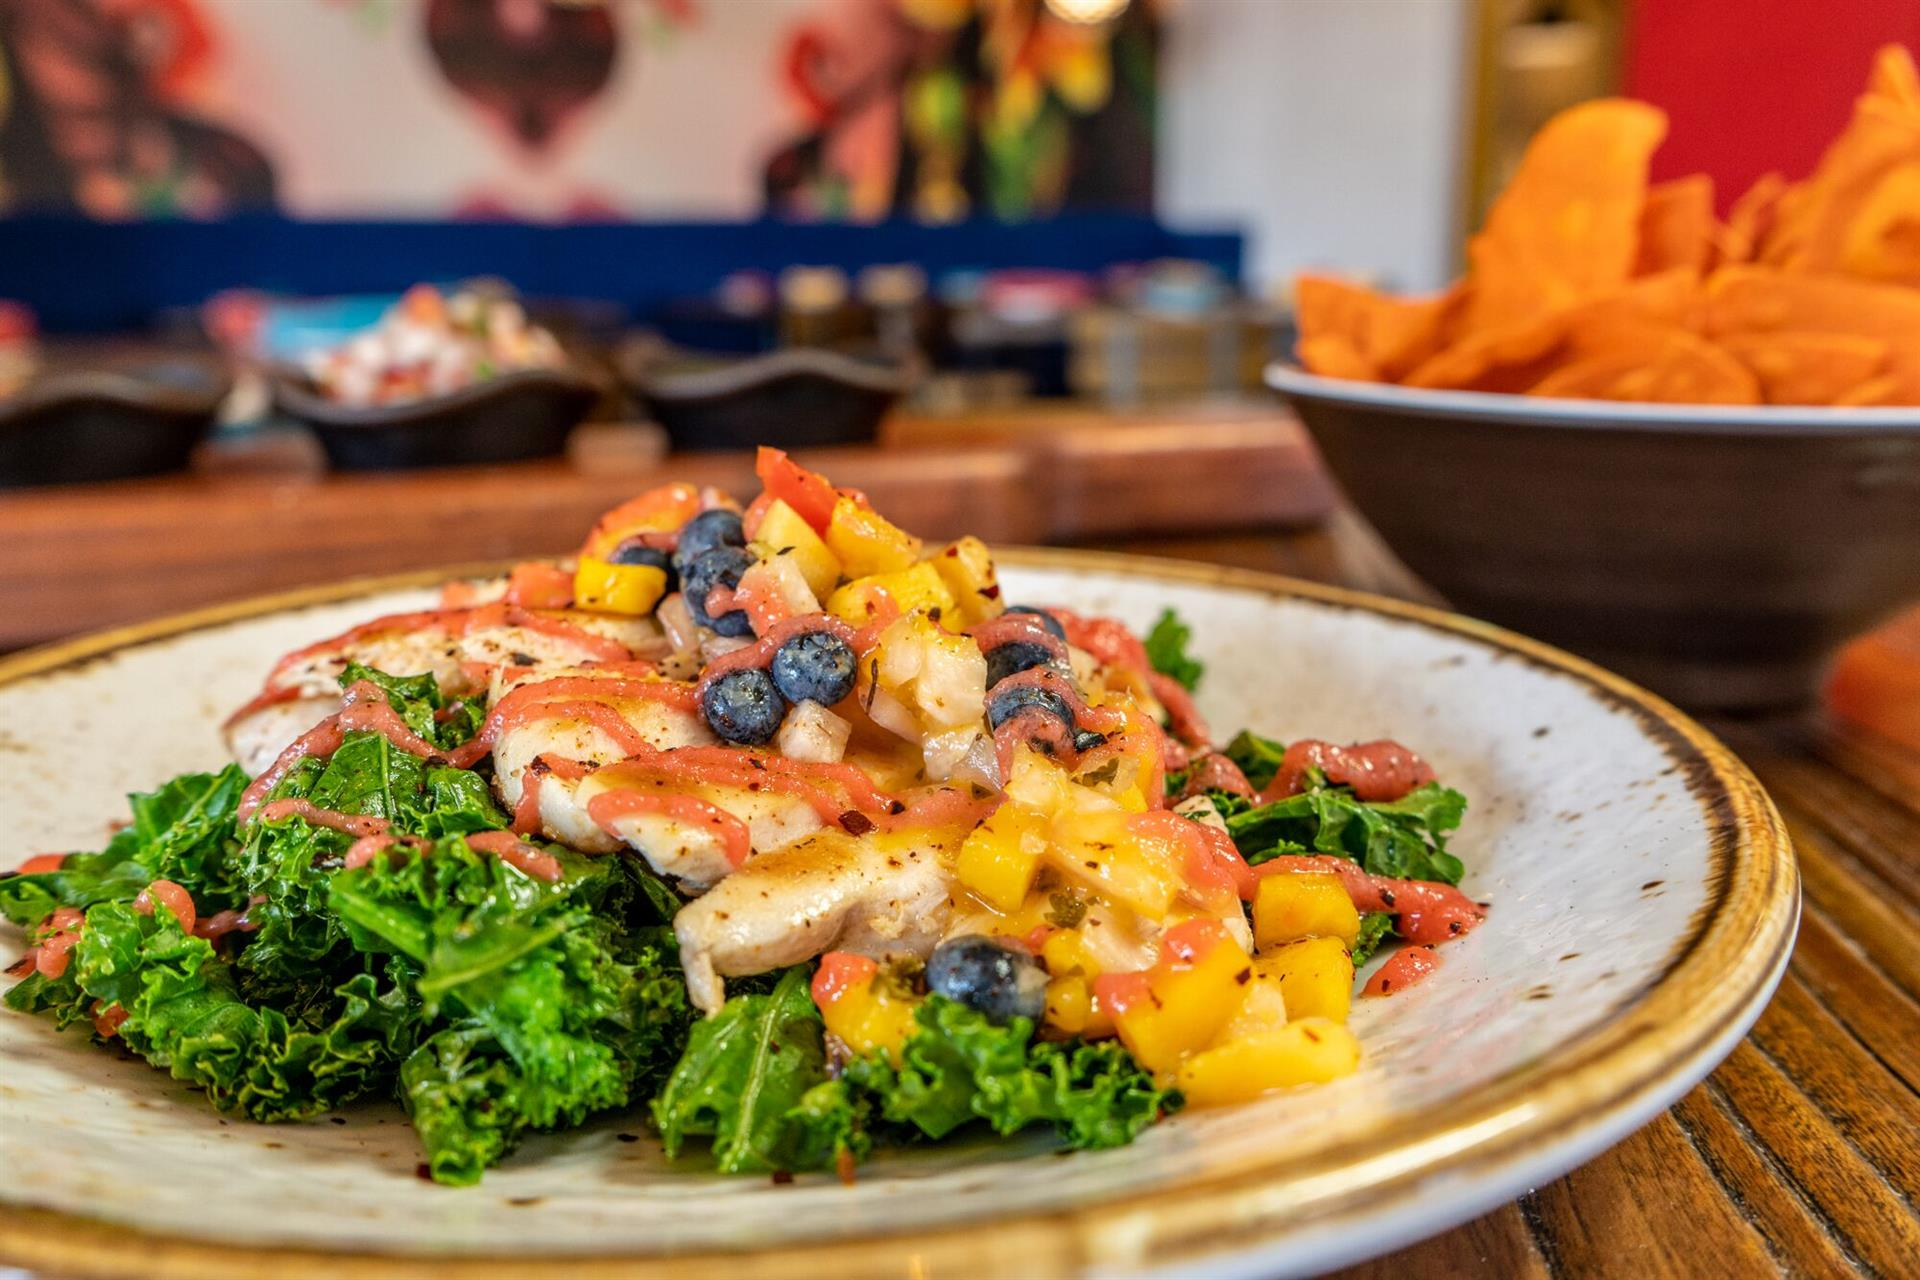 Baja chicken topped with tropical blueberry salsa and wilted kale drizzled harbanero-ginger sauce